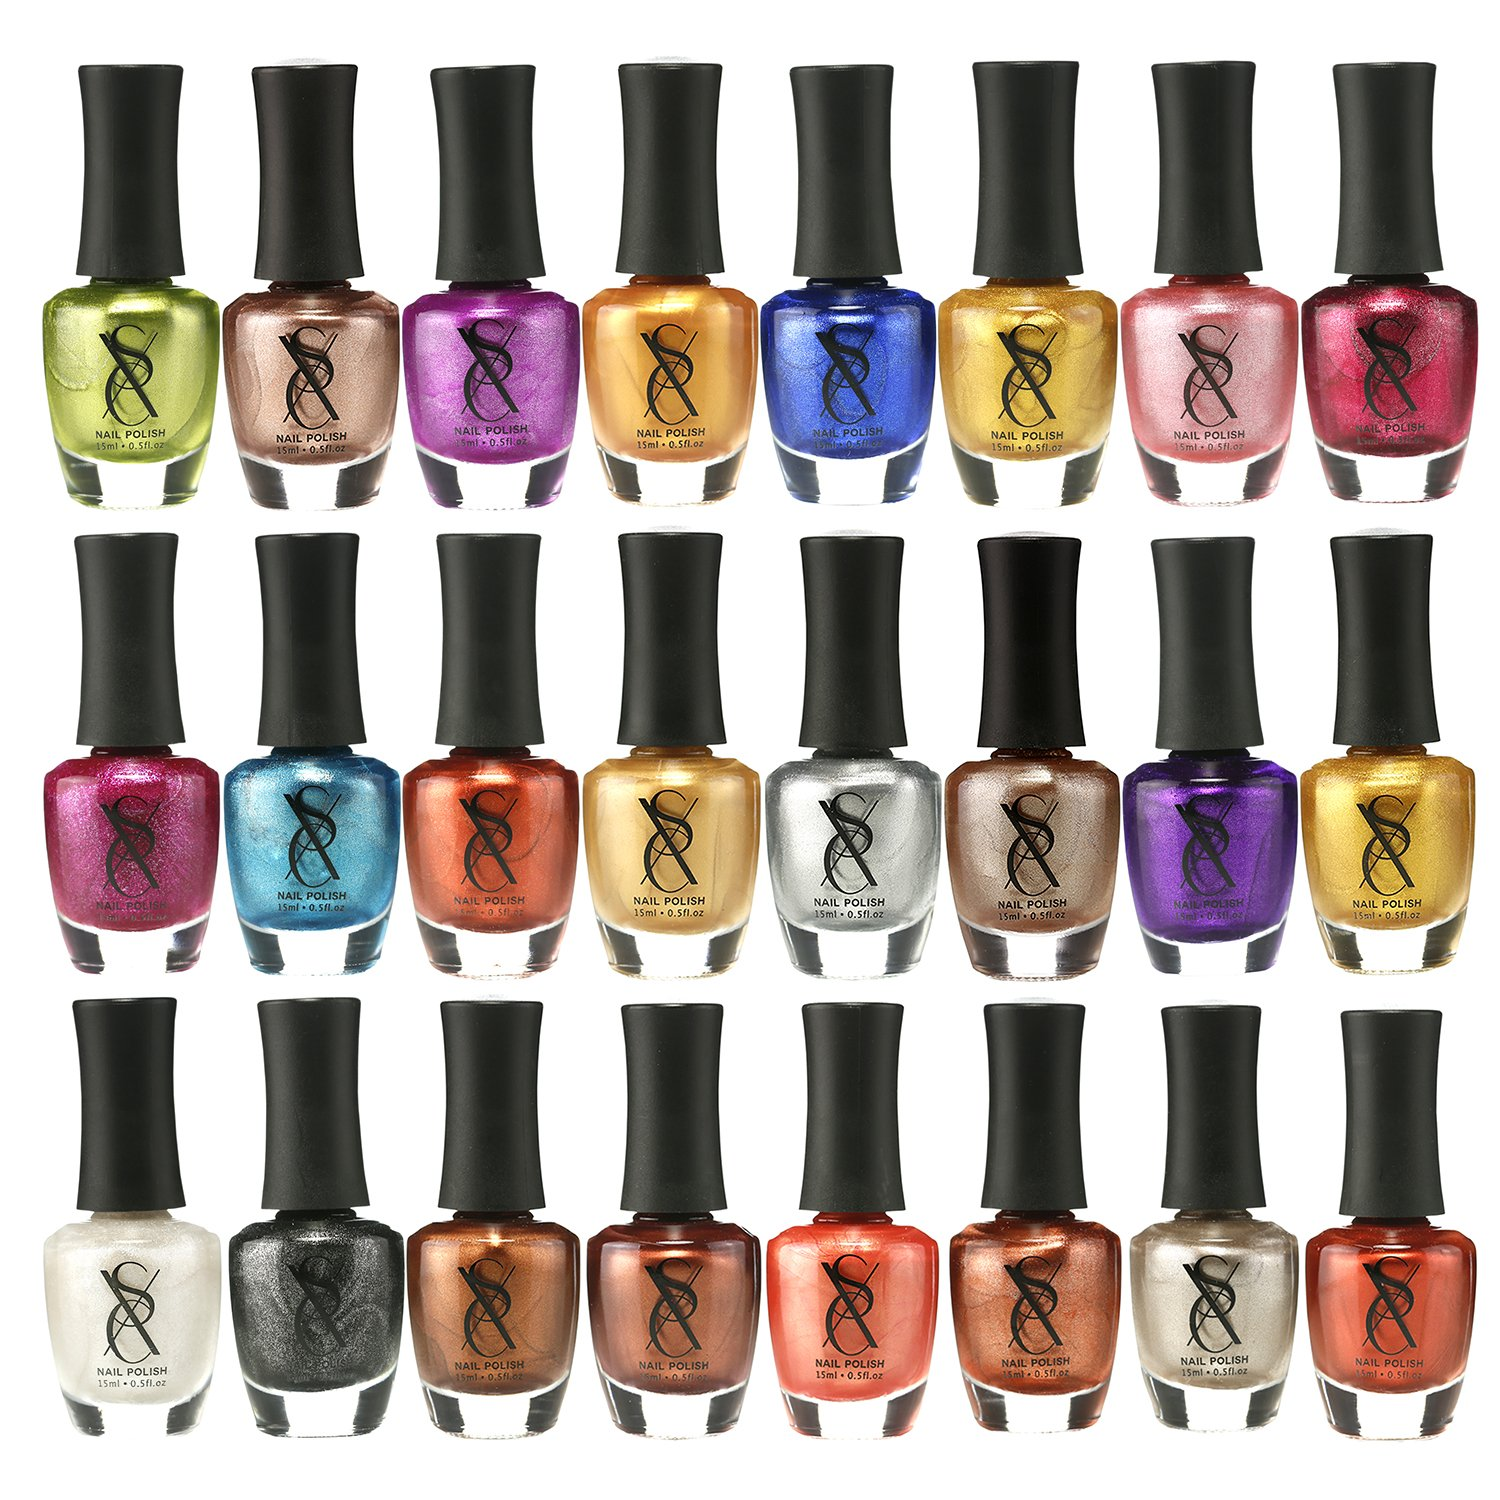 Amazon.com: SXC Cosmetics Nail Polish Set, 24 Neon Pastel